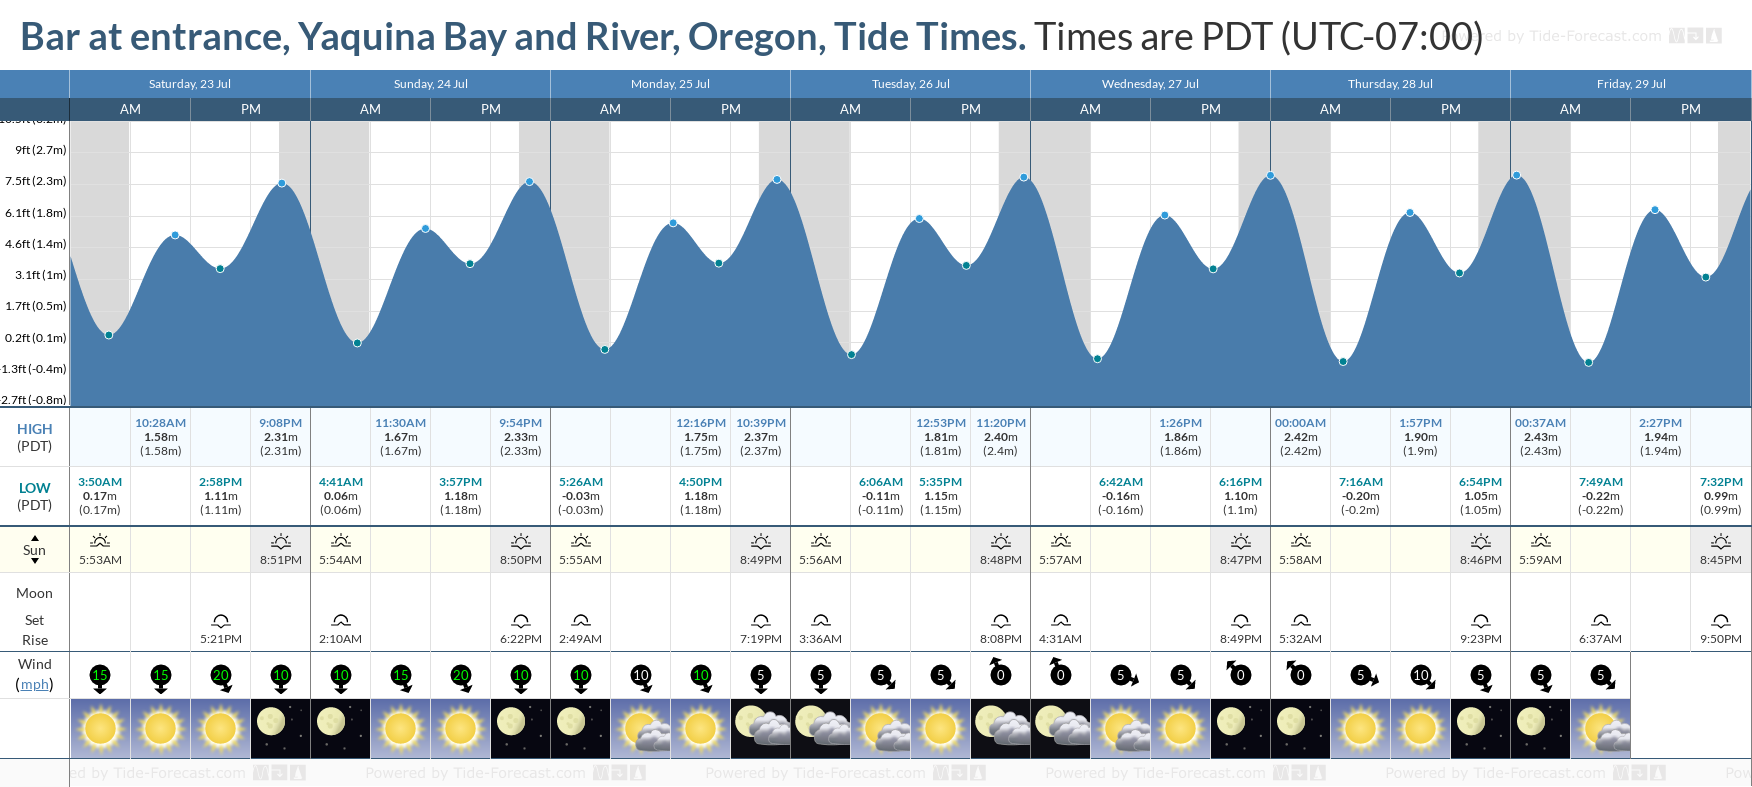 Bar at entrance, Yaquina Bay and River, Oregon Tide Chart including high and low tide tide times for the next 7 days